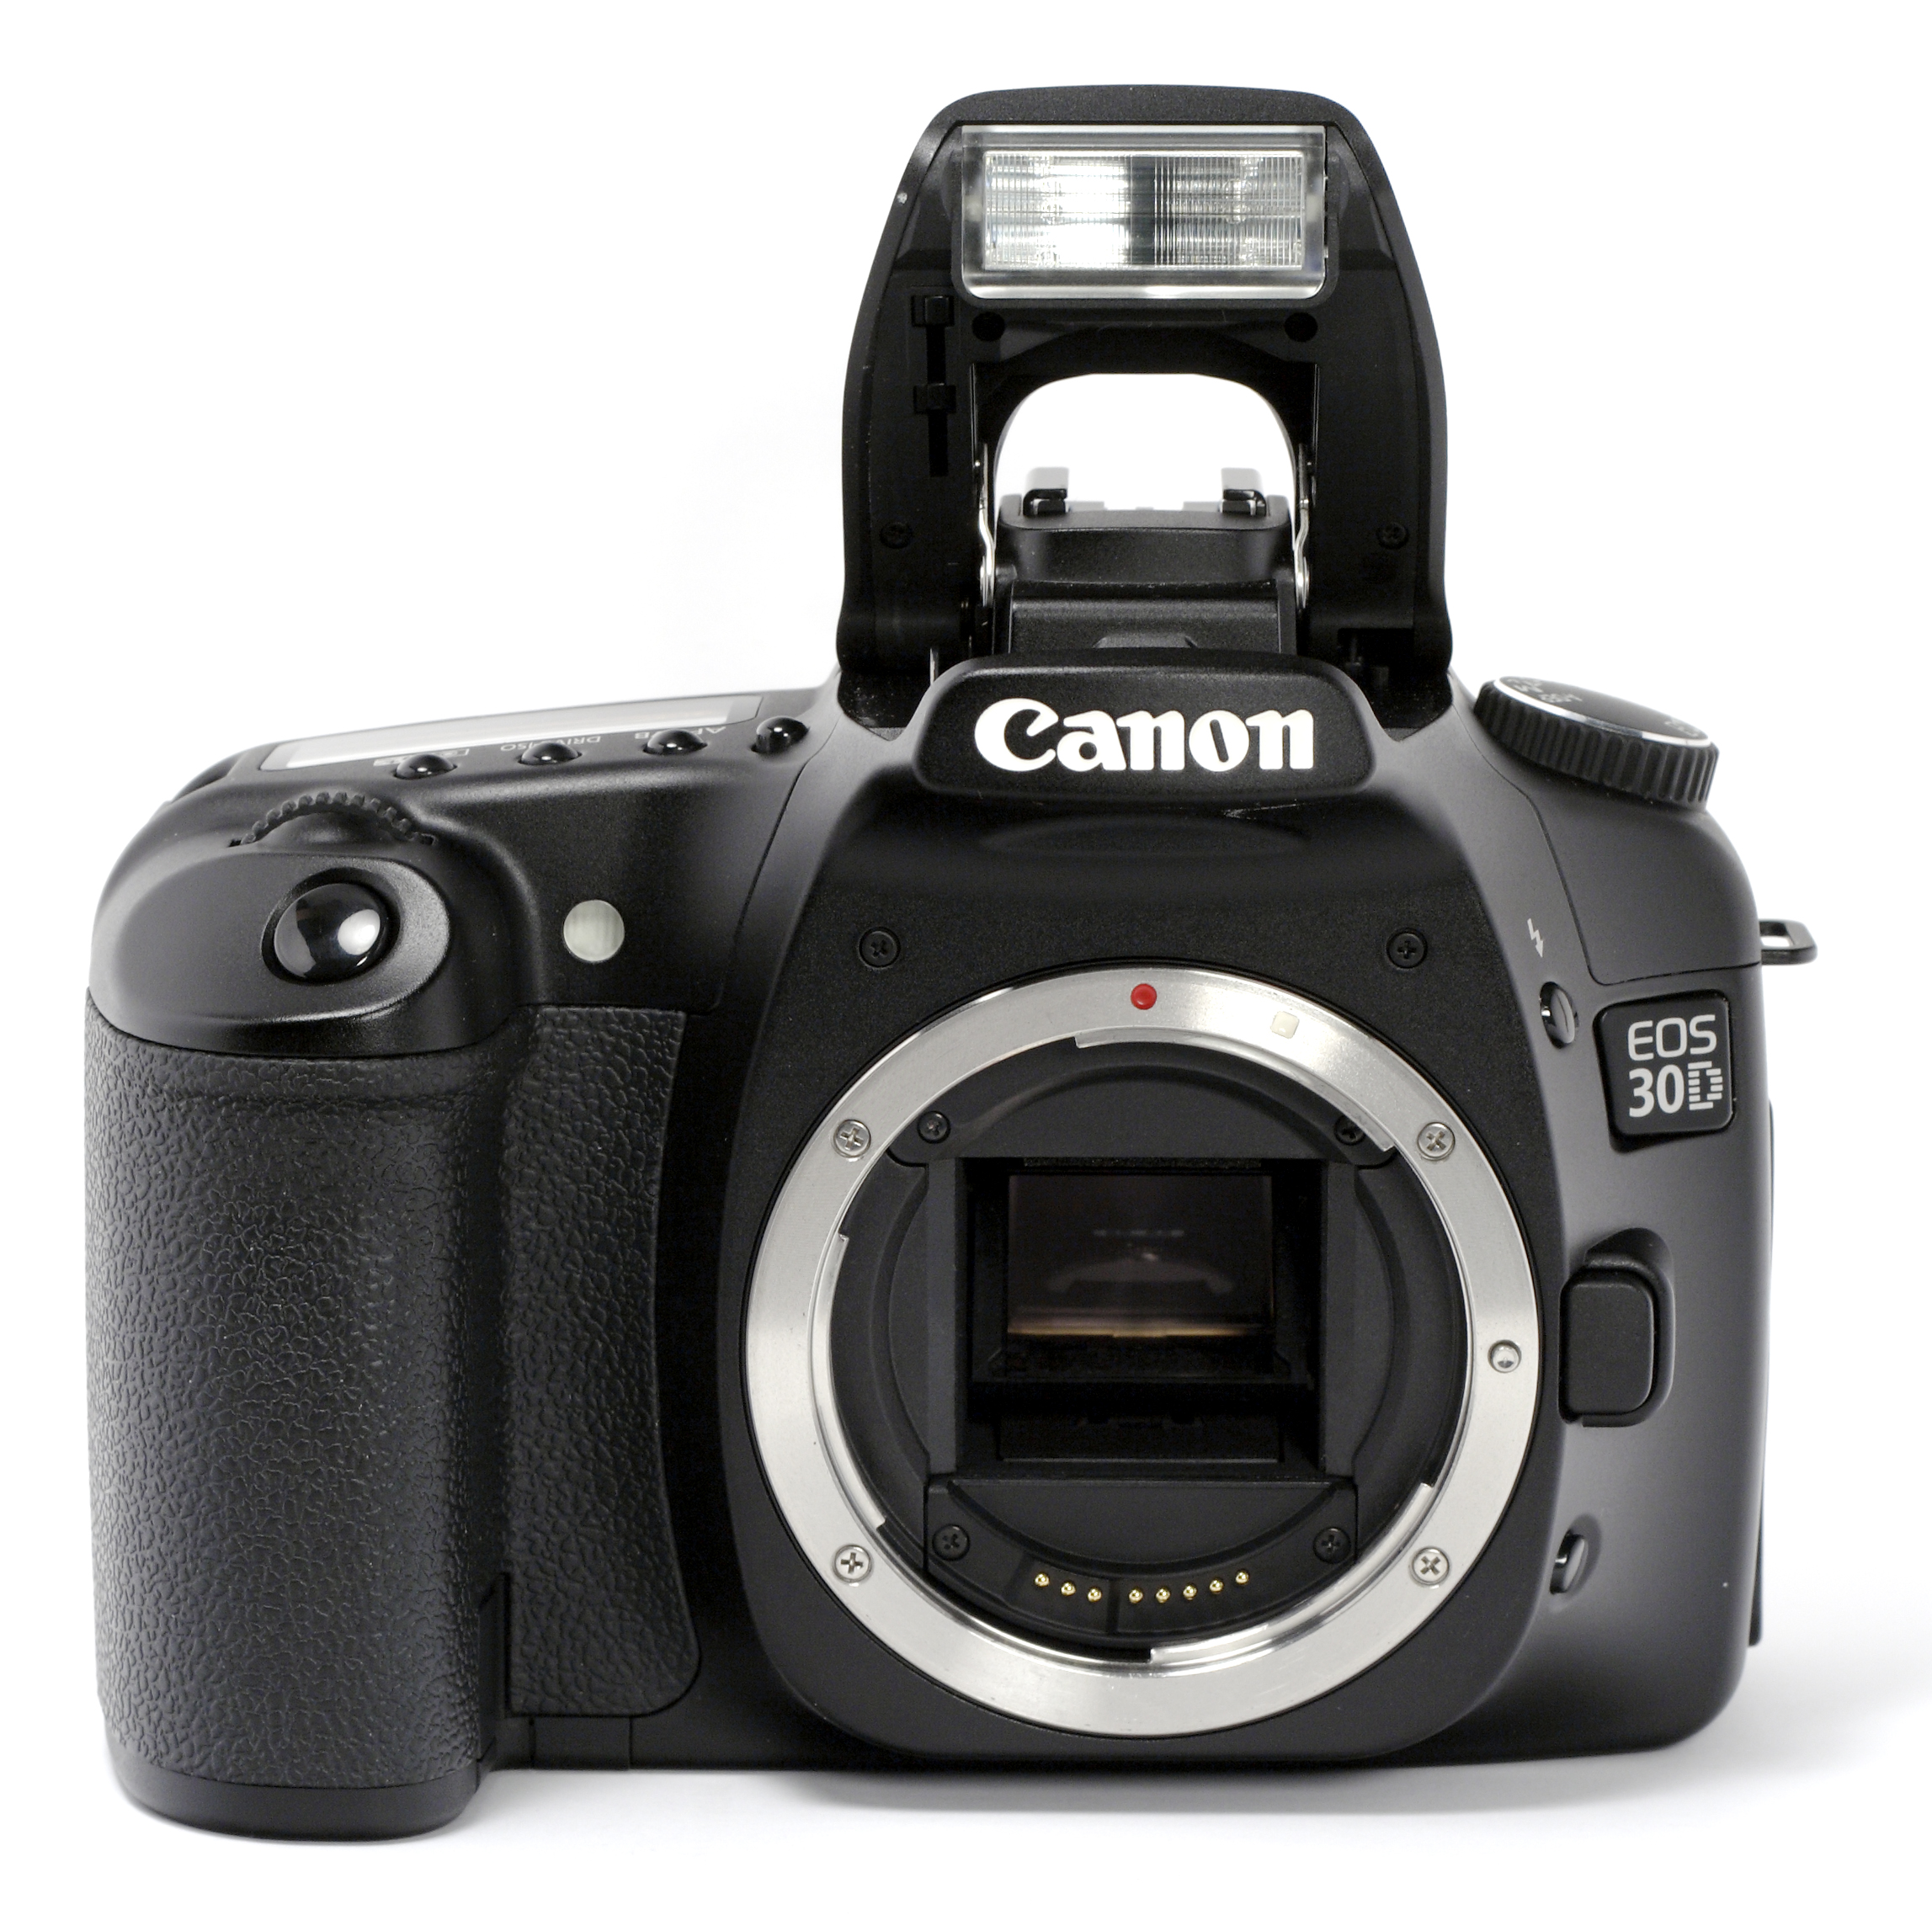 Фотоаппарат Canon EOS 1300D Kit Black 18-55 IS II (зеркальный 18.0 Mp SD,SDHC SDXC,USB HDMI)